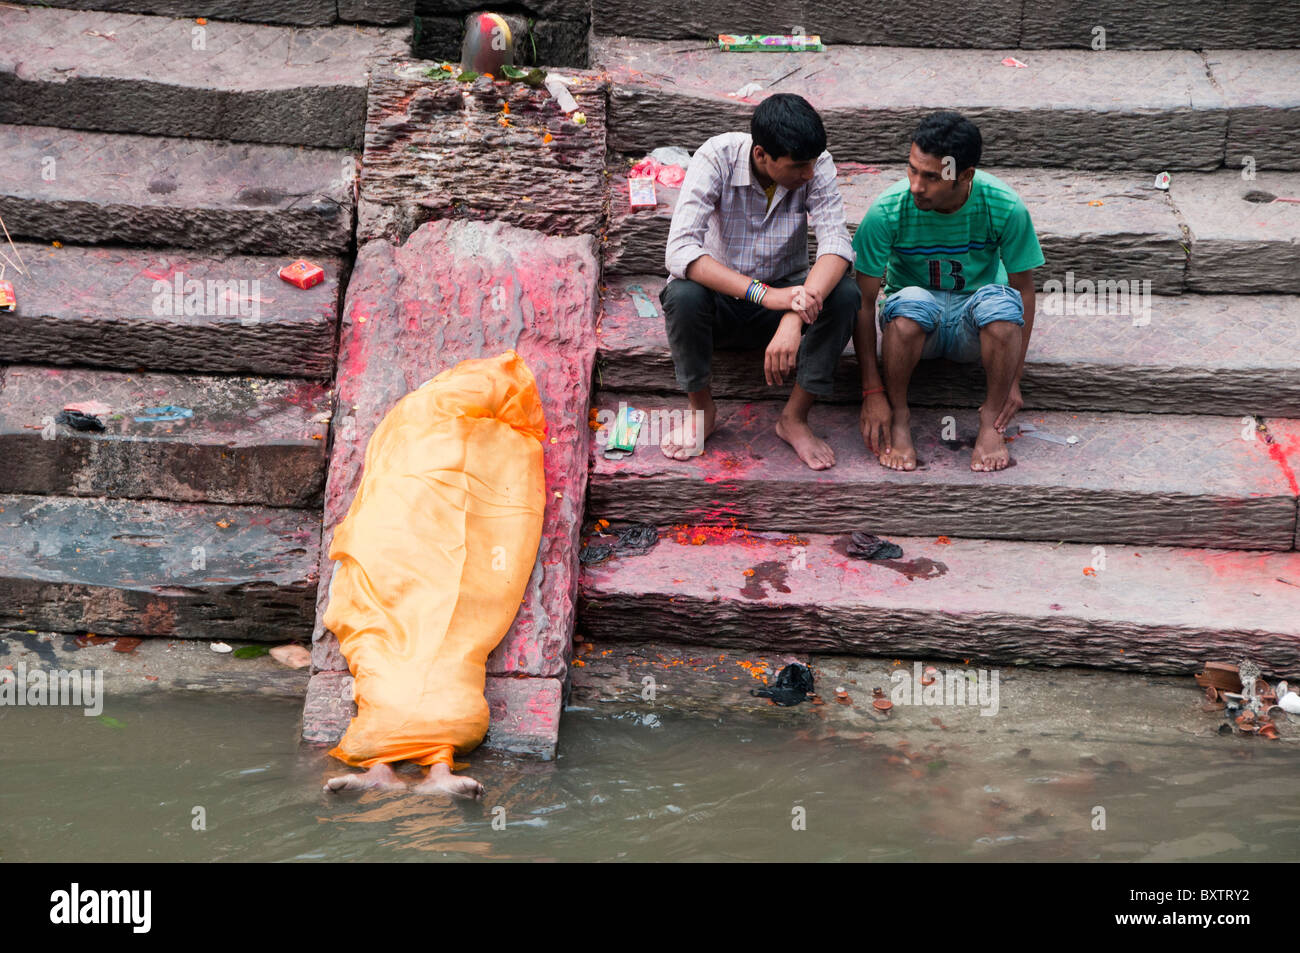 last rites at a cremation funeral on the Bagmati River at the Pahsupatinath Temple in Kathmandu, Nepal - Stock Image